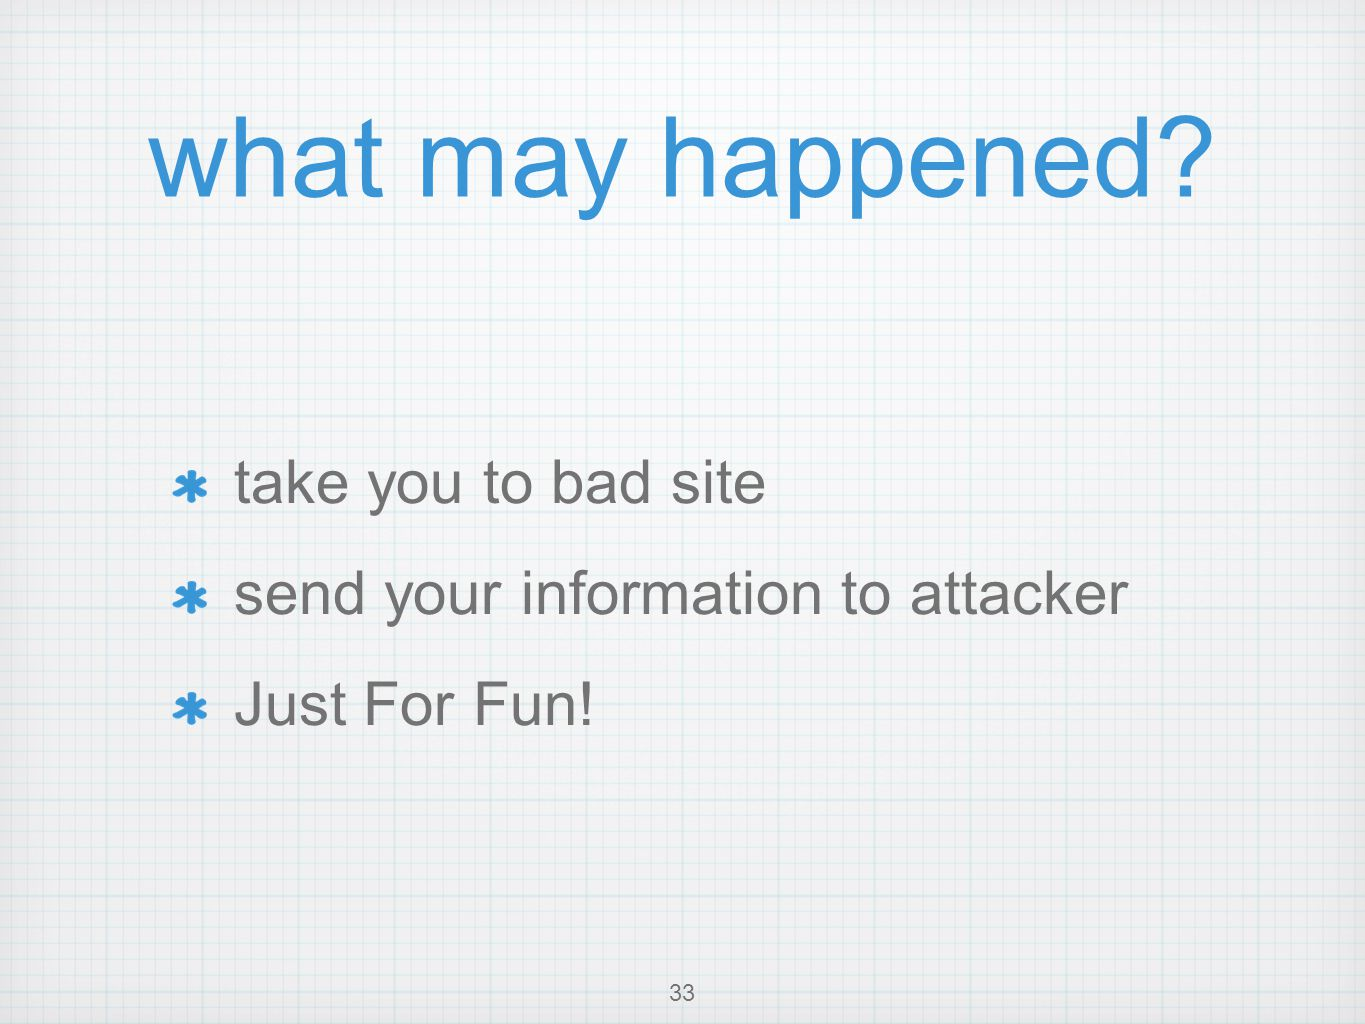 what may happened take you to bad site send your information to attacker Just For Fun! 33